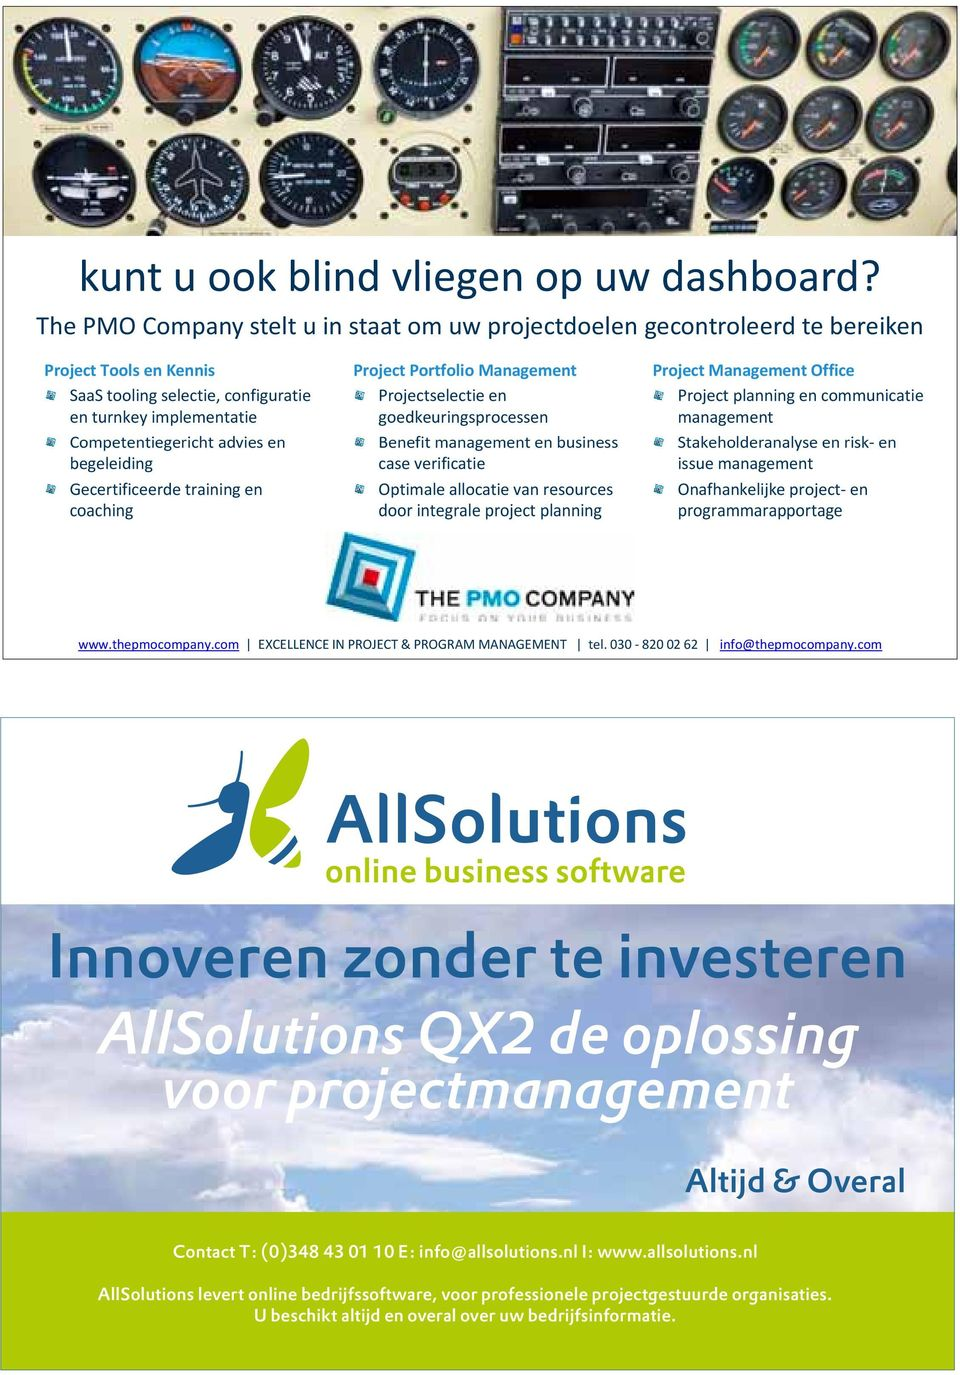 begeleiding Gecertificeerde training en coaching Project Portfolio Management Projectselectie en goedkeuringsprocessen Benefit management en business case verificatie Optimale allocatie van resources